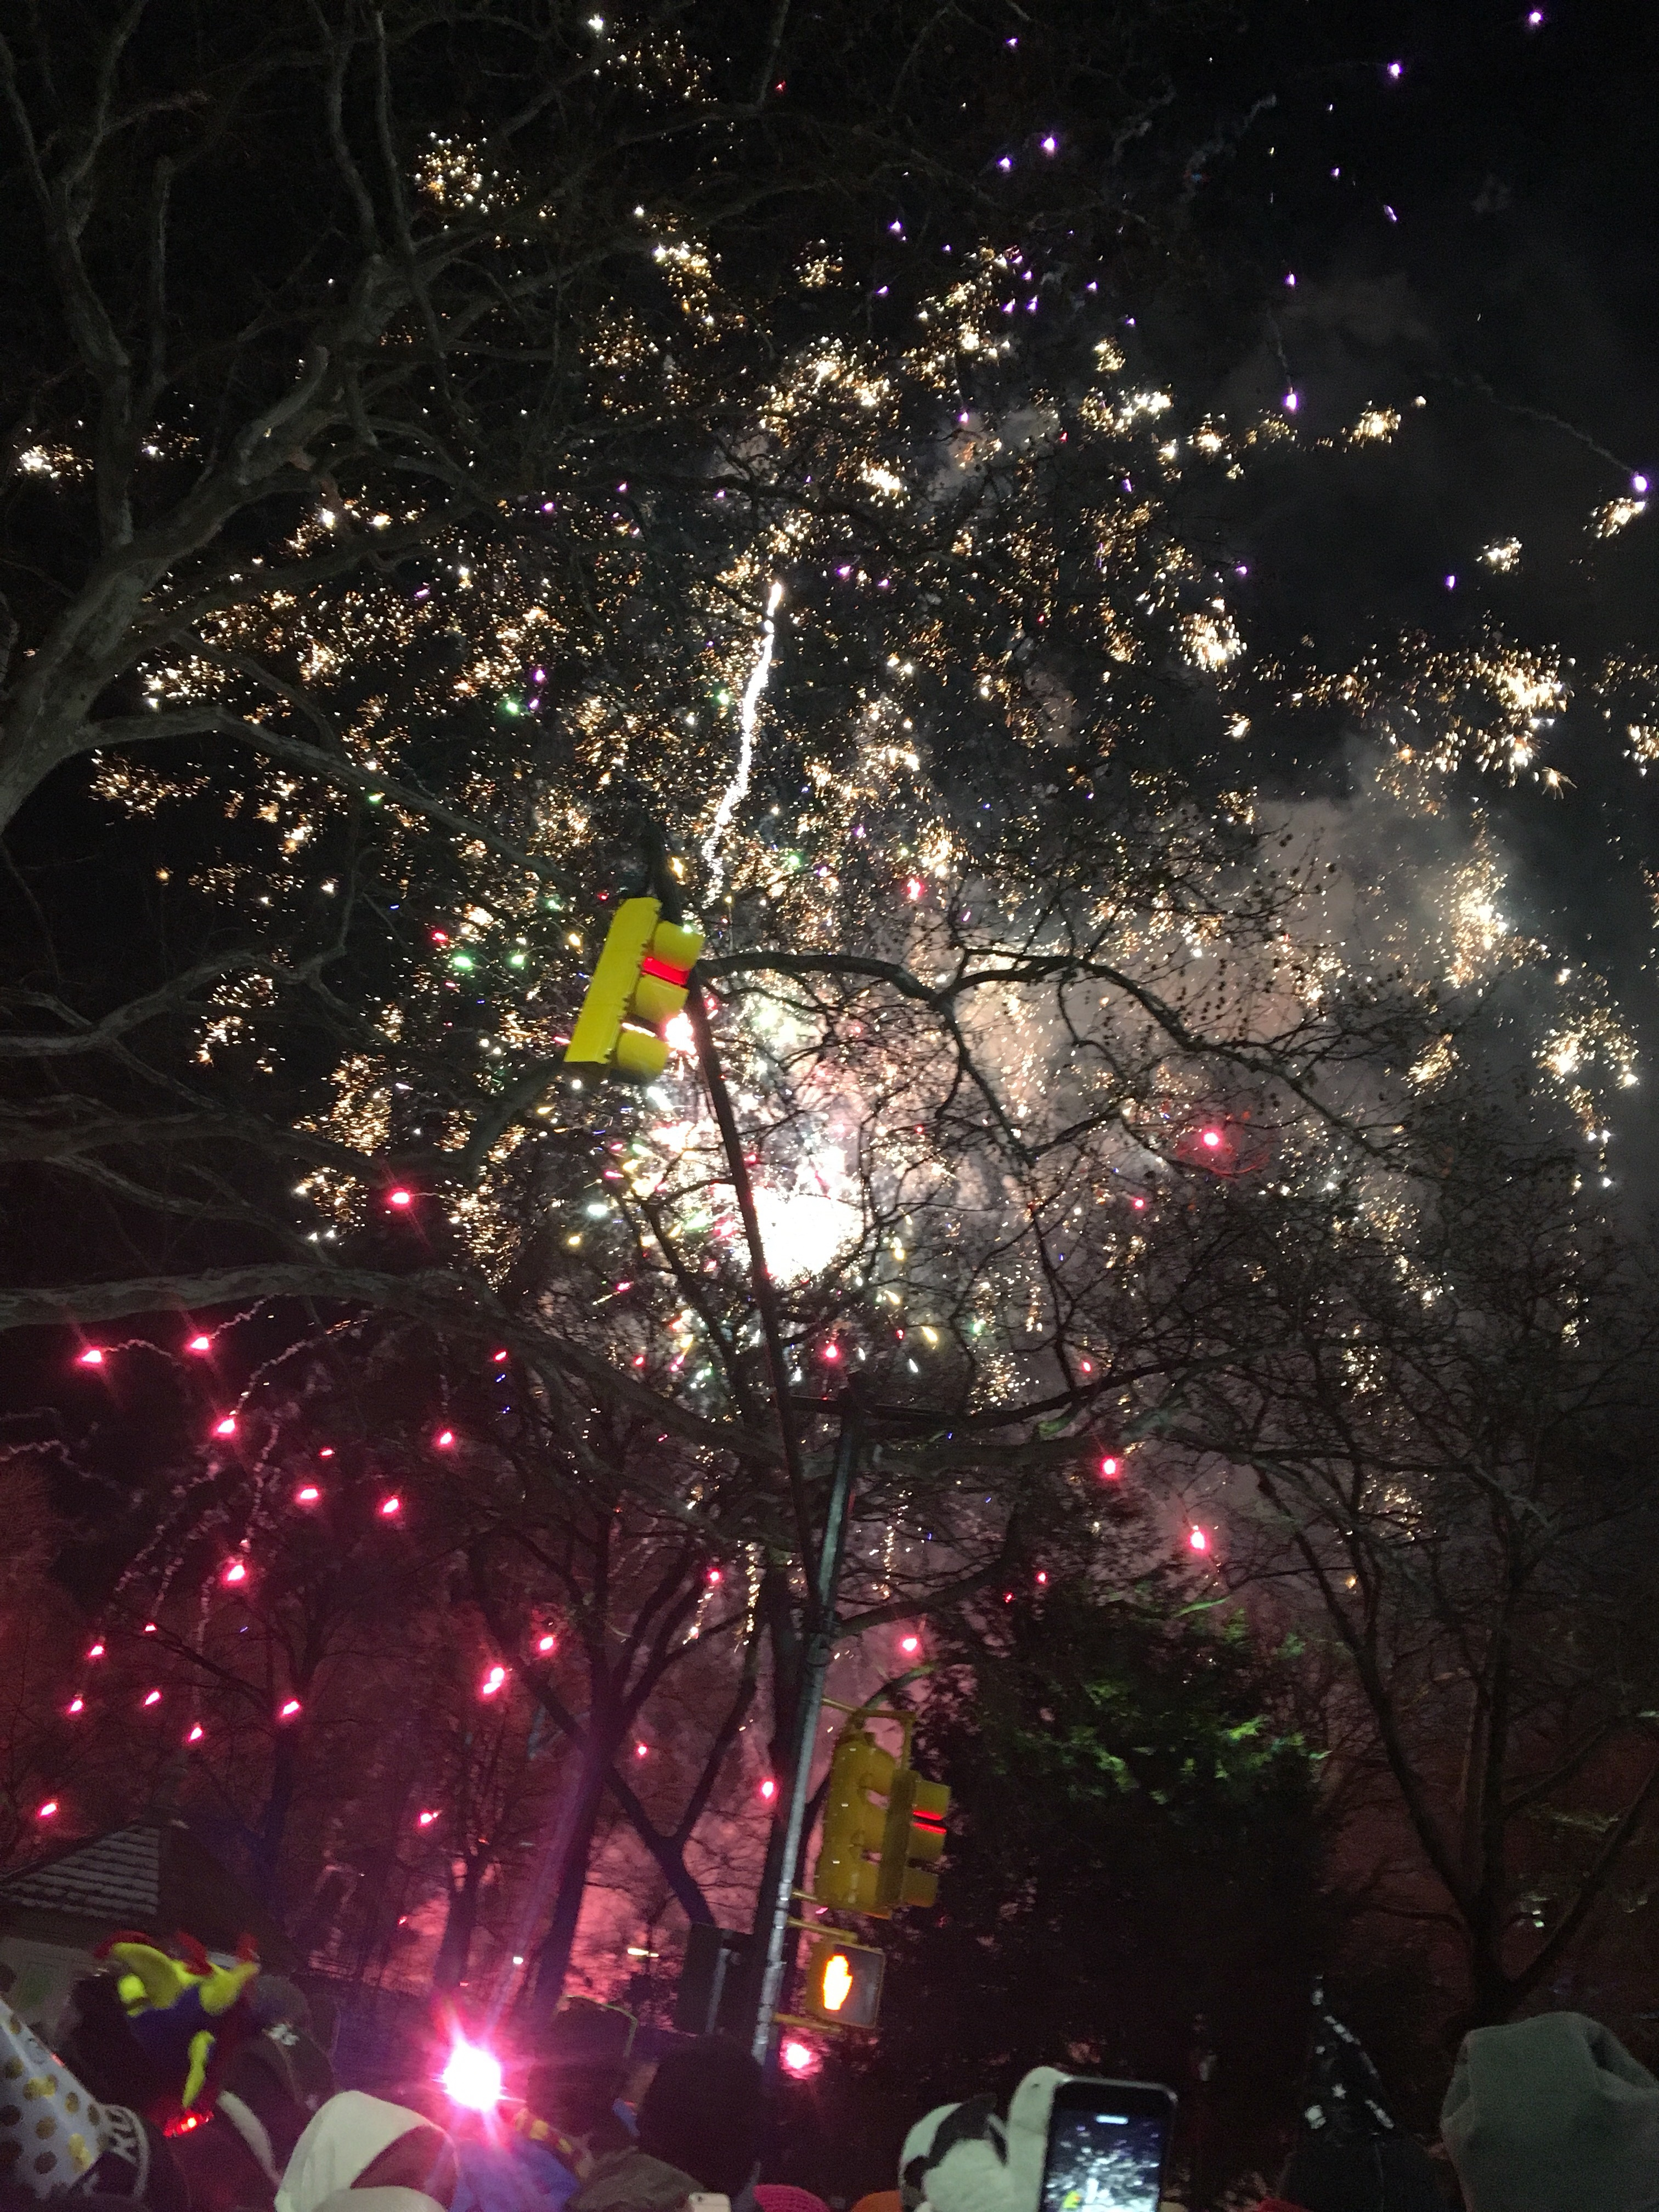 Fireworks at the NYRR Midnight Run in Central Park